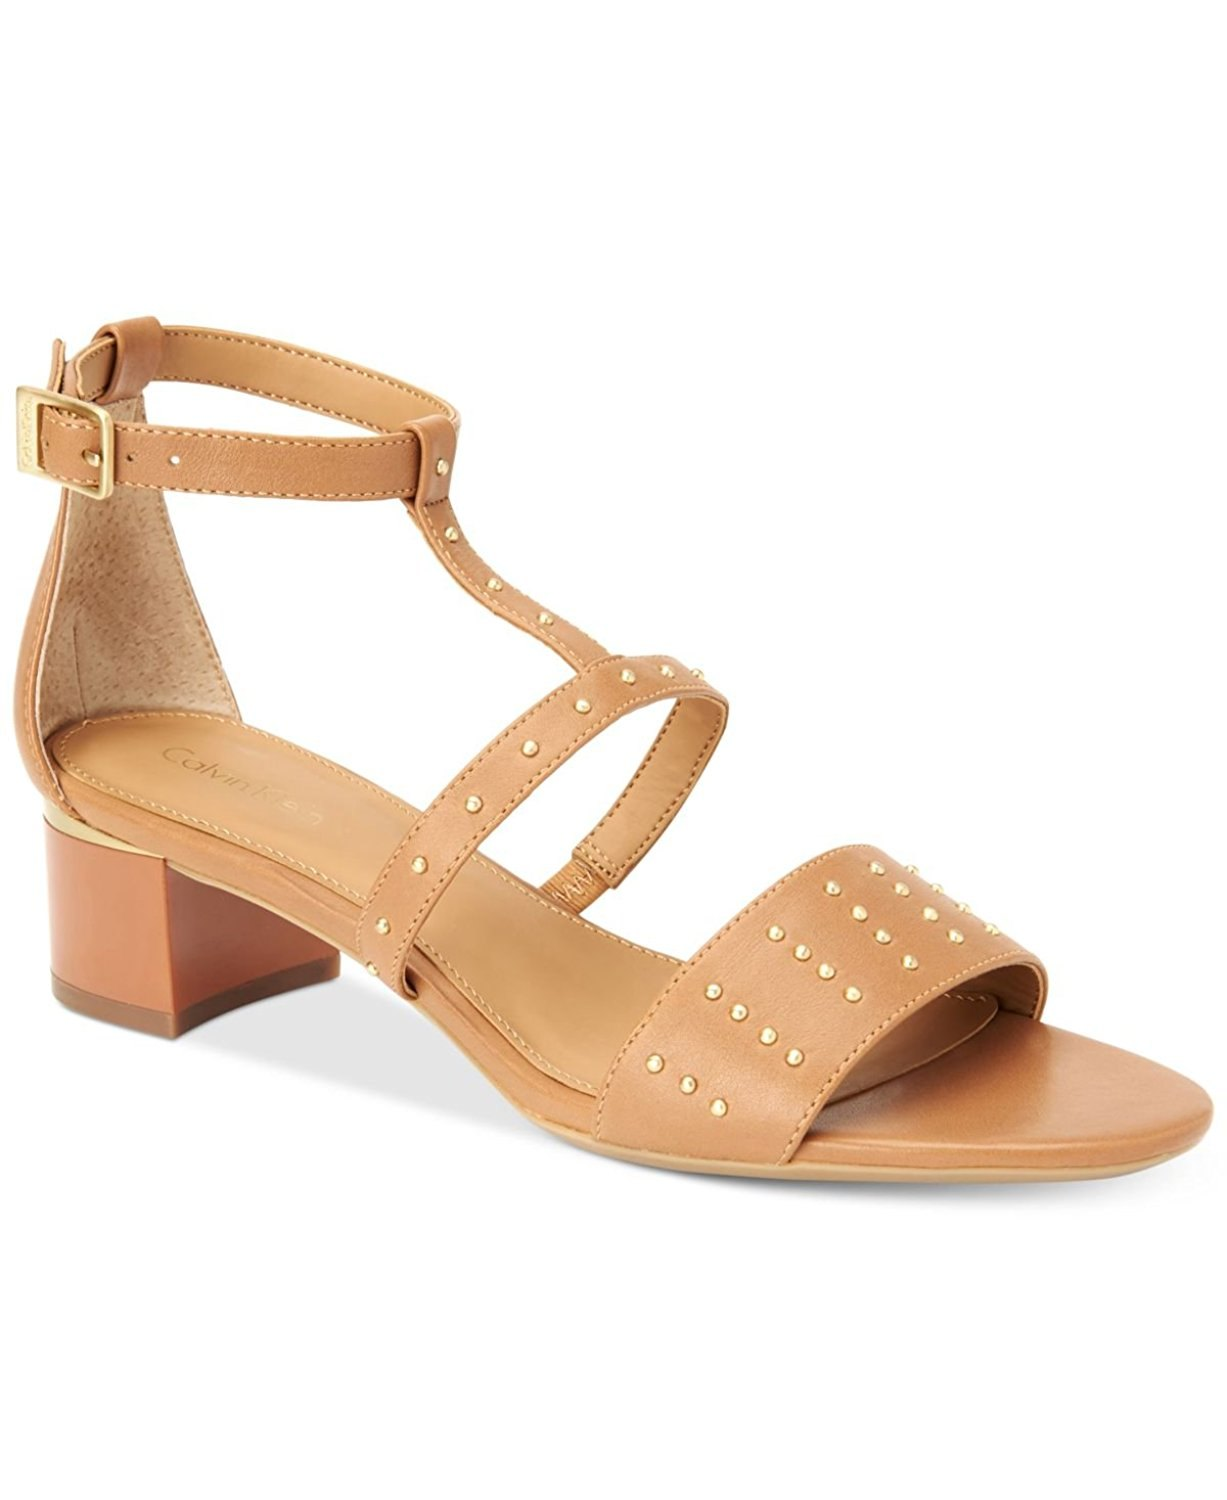 Calvin Klein Womens Divina Open Toe Ankle Strap D-orsay, New Caramel, Size 8.5